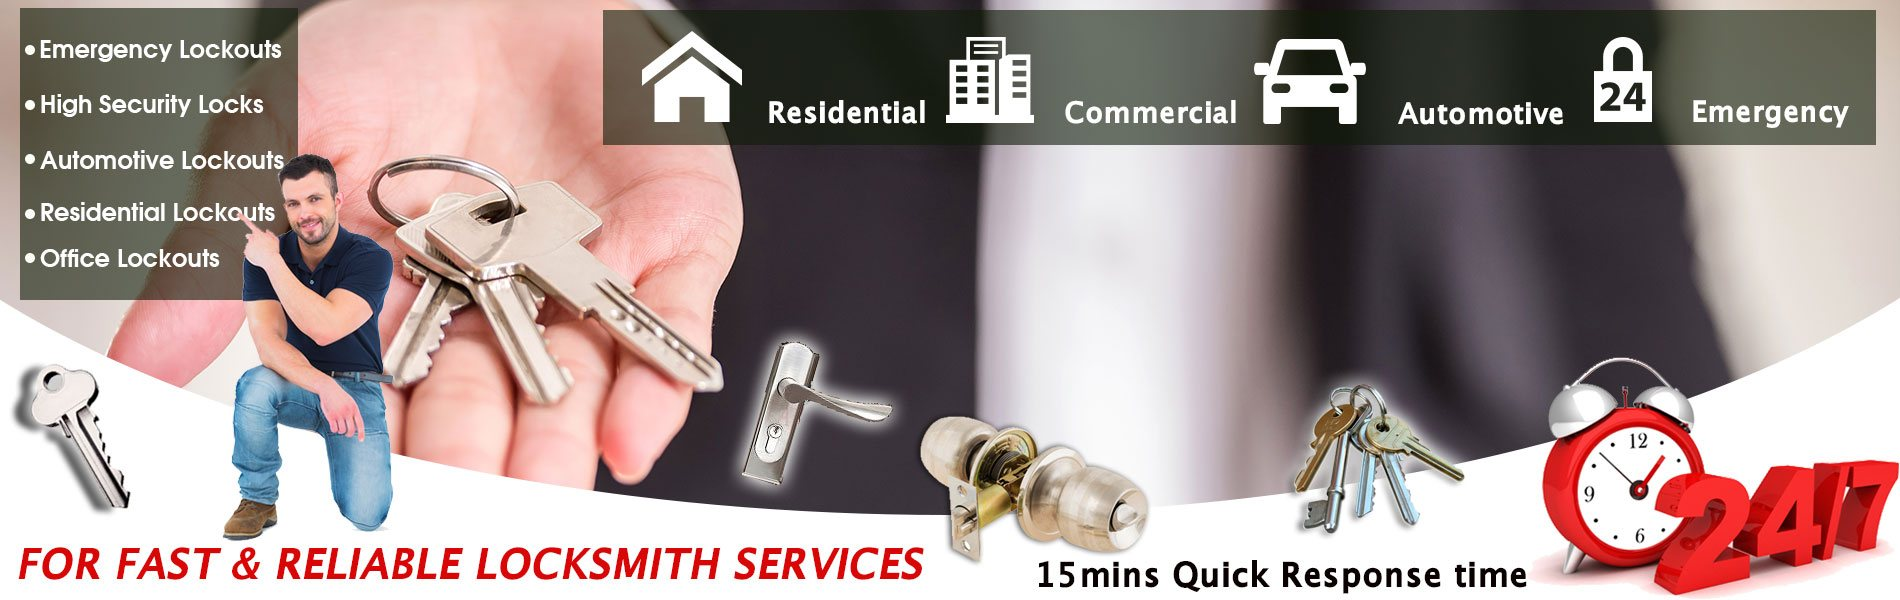 Indianapolis City Locksmith Indianapolis, IN 317-456-5207